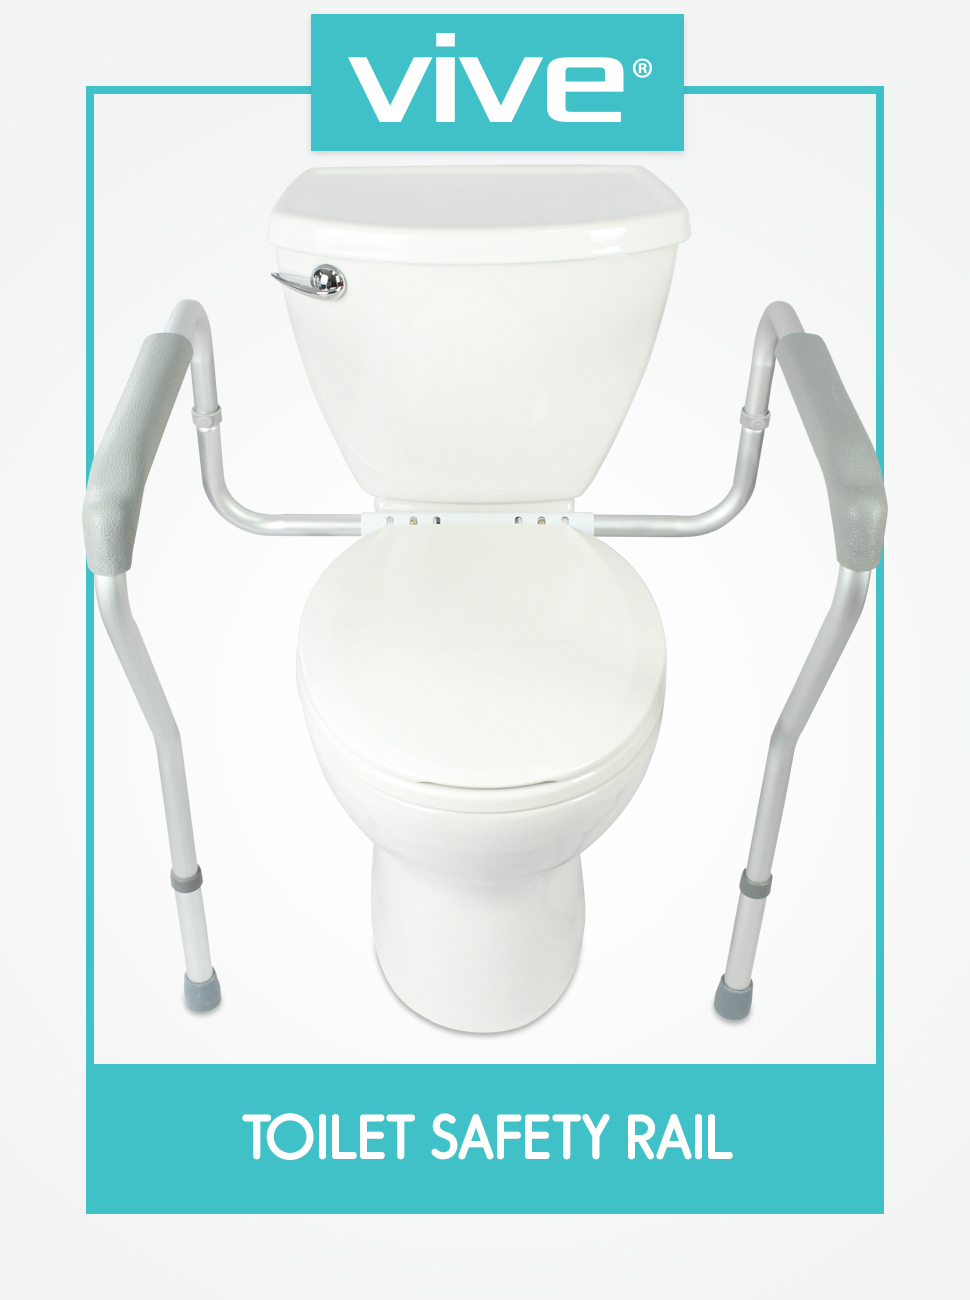 Amazon.com: Toilet Rail by Vive - Bathroom Safety Frame for ...